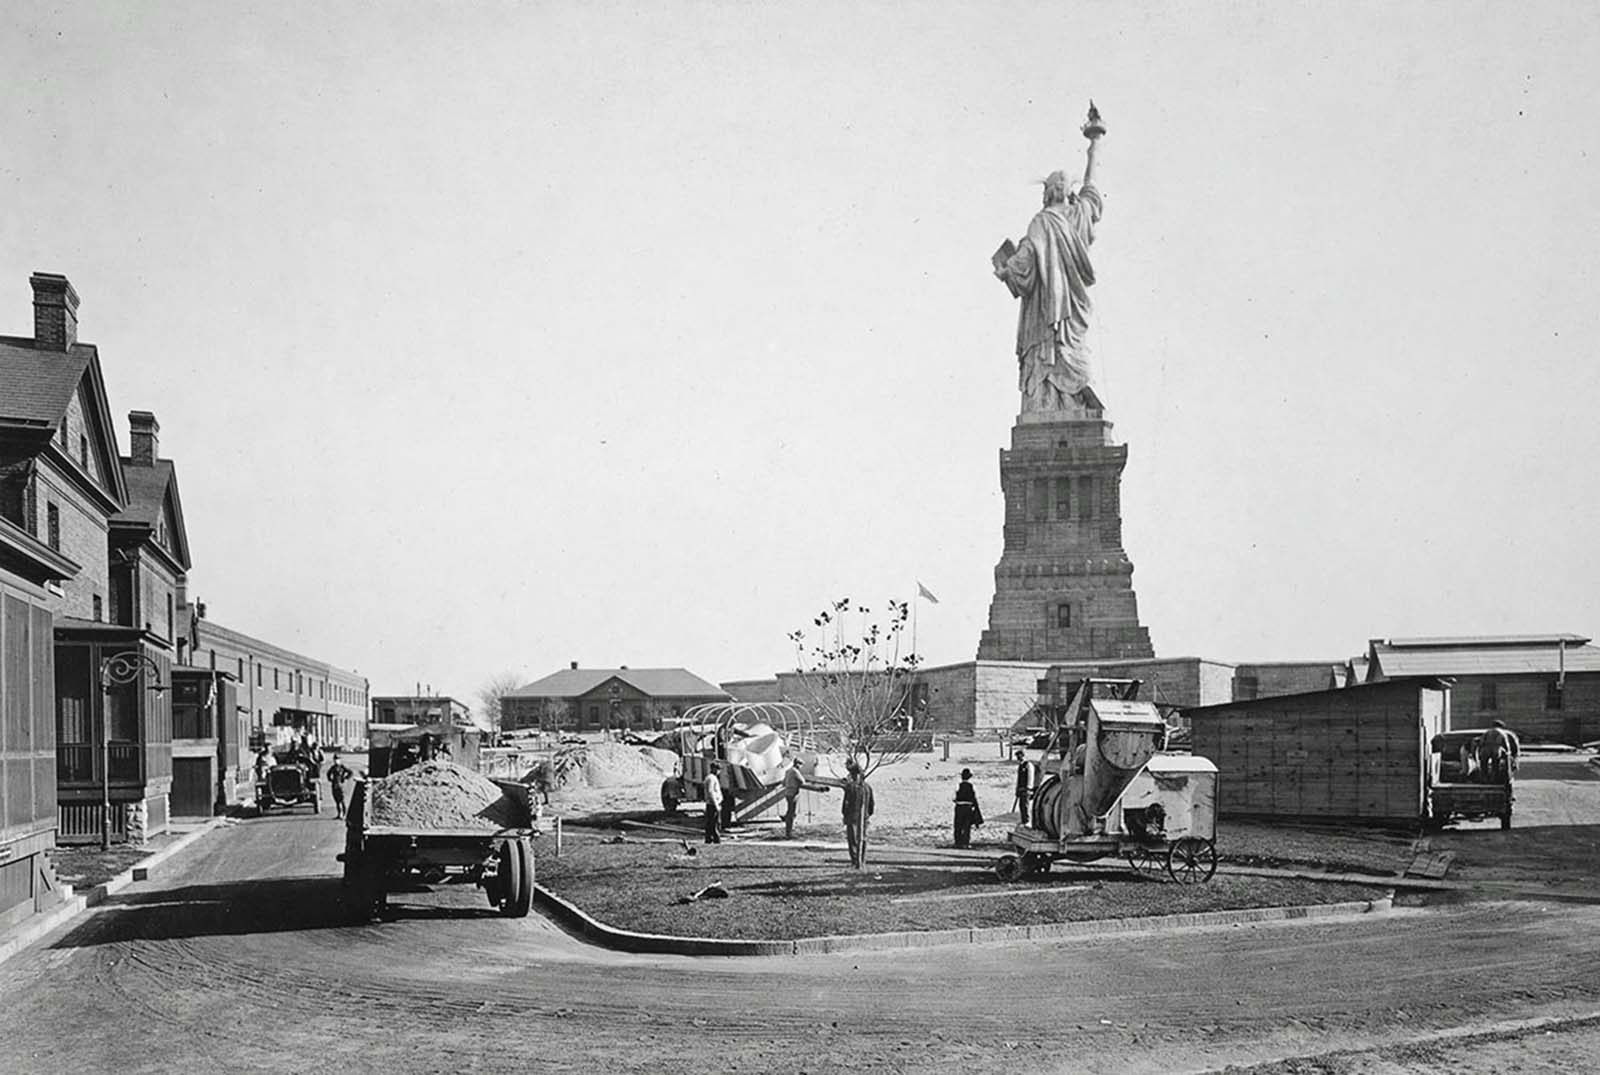 The island that the statue now stands on was previously occupied by Fort Wood, a U.S. military fortification. By the late 1880s, the fort was becoming obsolete, and part of the land was given over to the statue. Here, a view of the Statue of Liberty, standing above workers in Fort Wood, circa 1918.